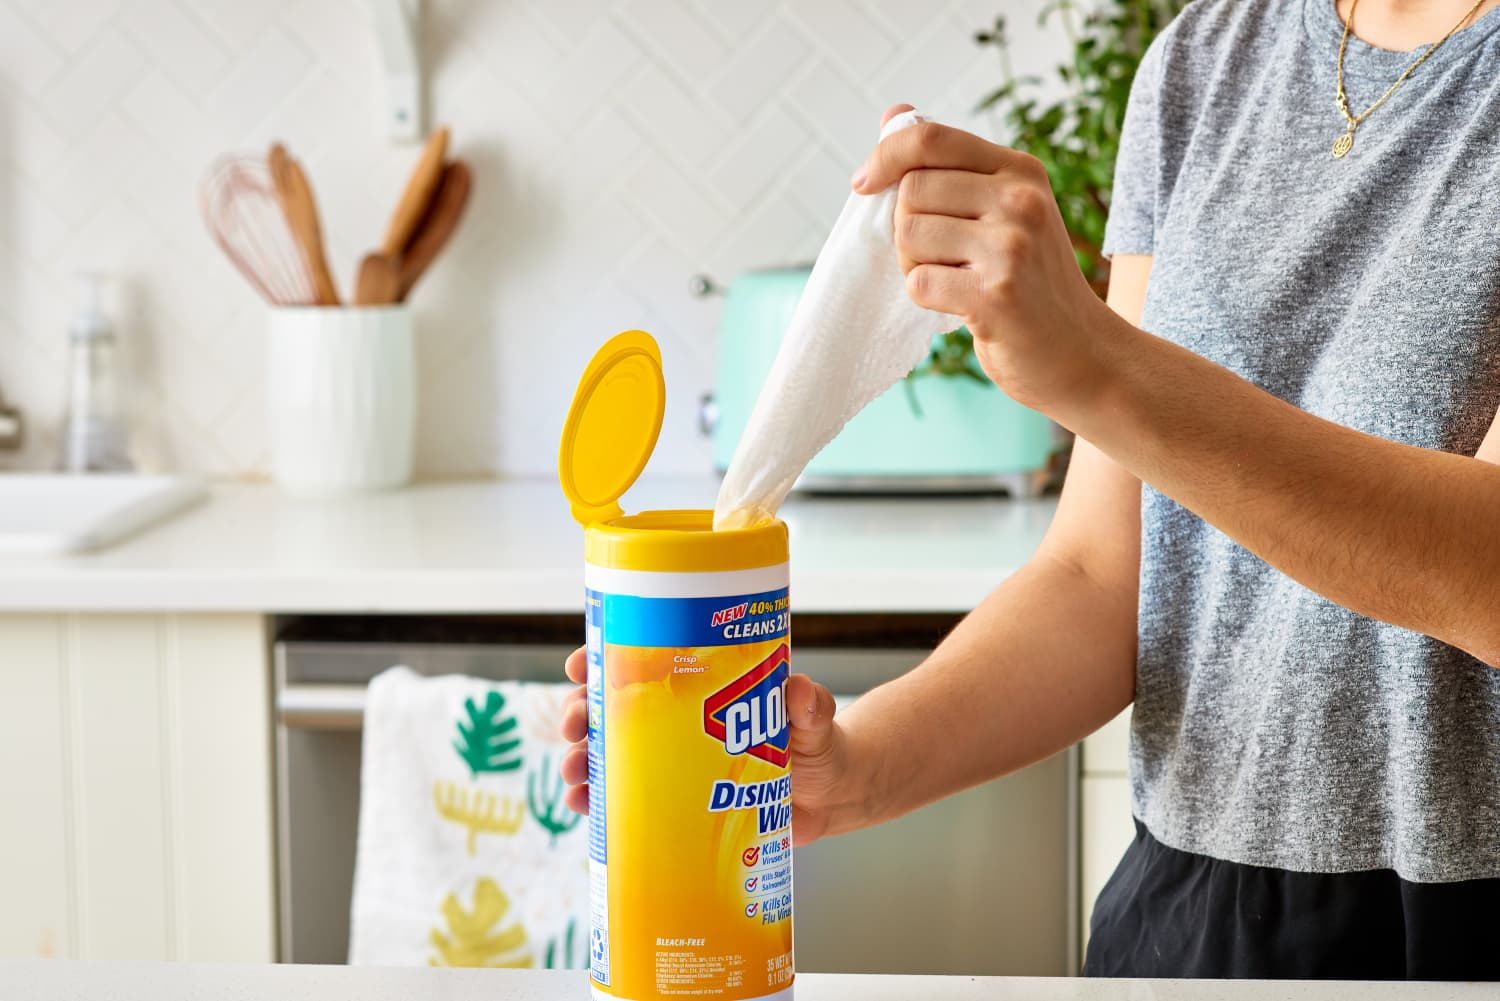 7 Things You Should Never Do with Clorox Wipes